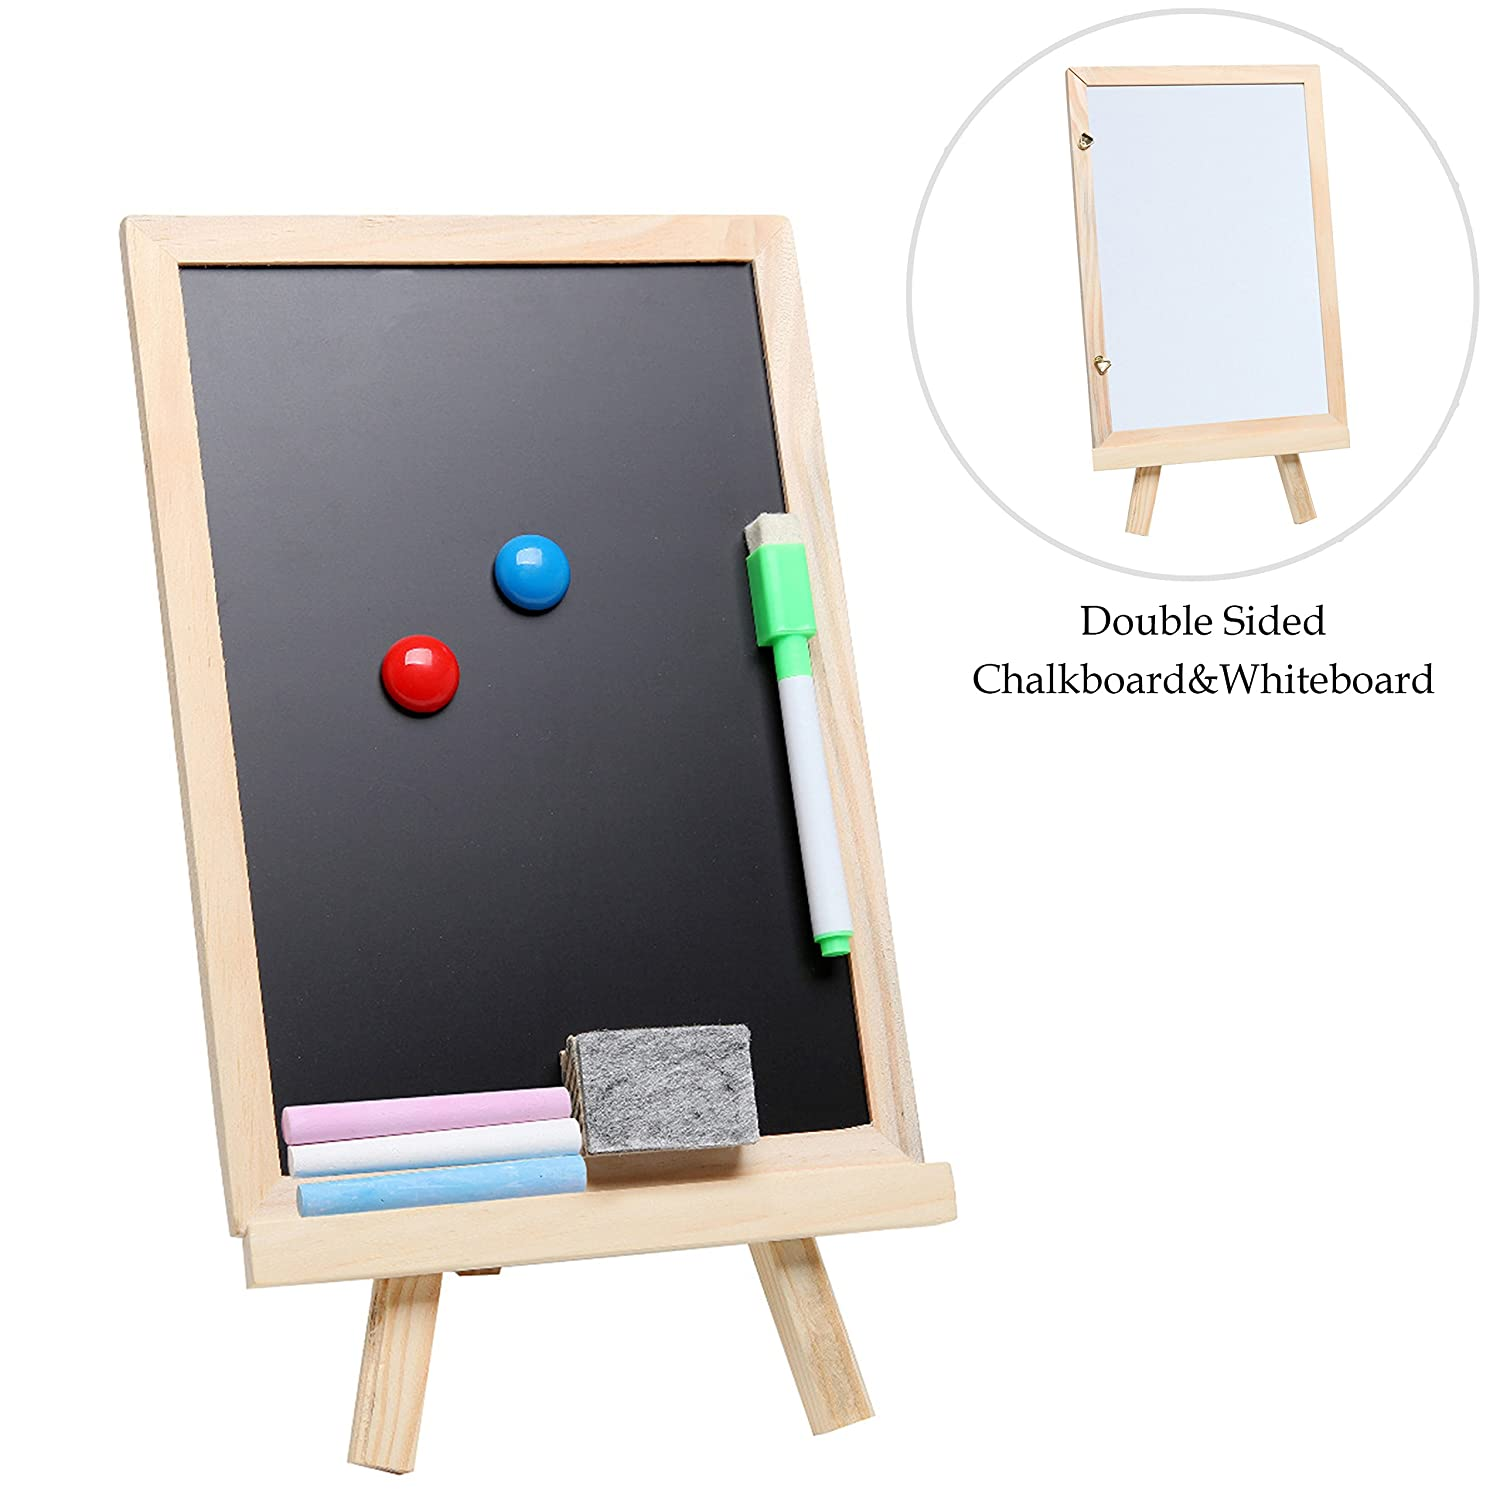 MyGift Small Wood Chalkboard Easel, Whiteboard Stand w/ Chalks, Magnets & Marker TB-OFC0003BEI